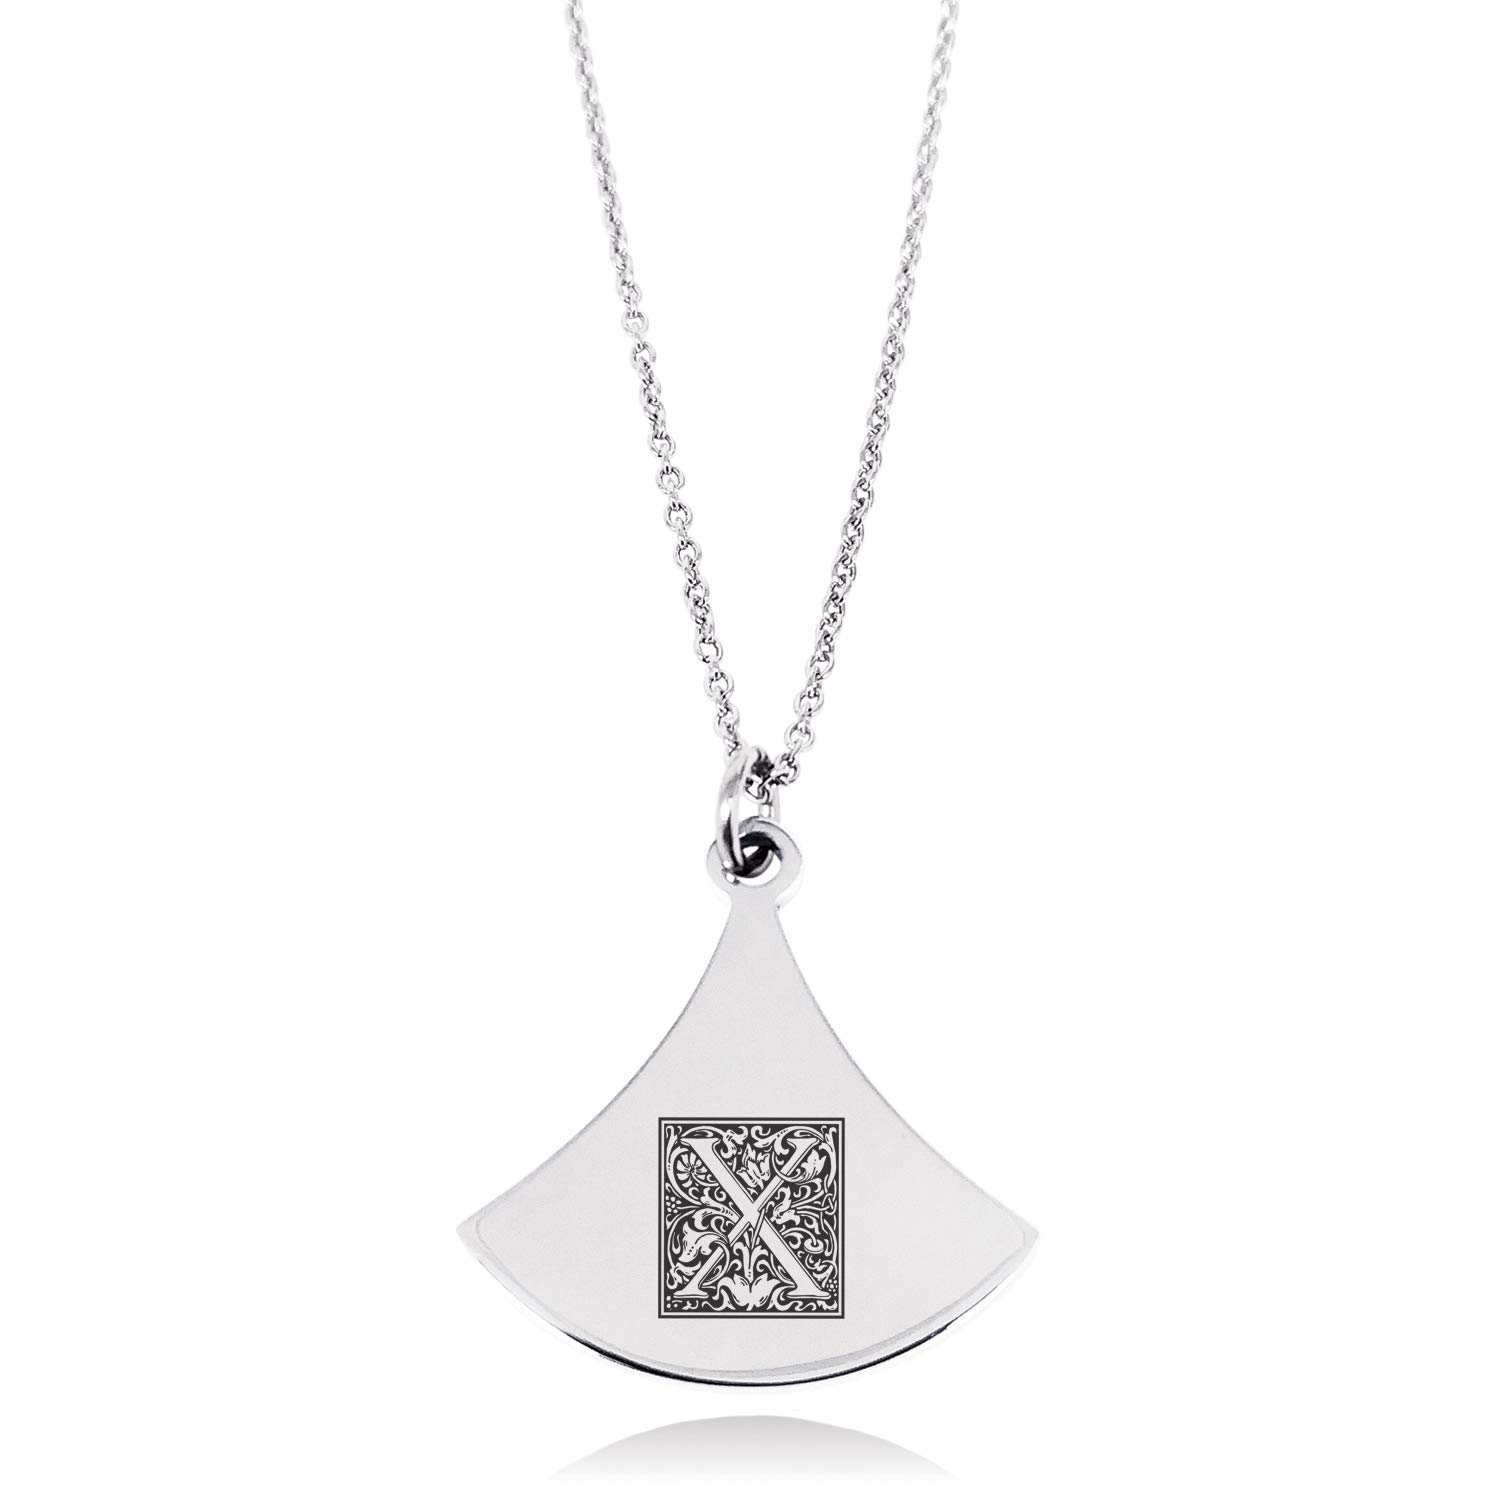 Stainless Steel Letter X Initial Floral Box Monogram Pendulum Curved Triangle Charm Pendant Necklace